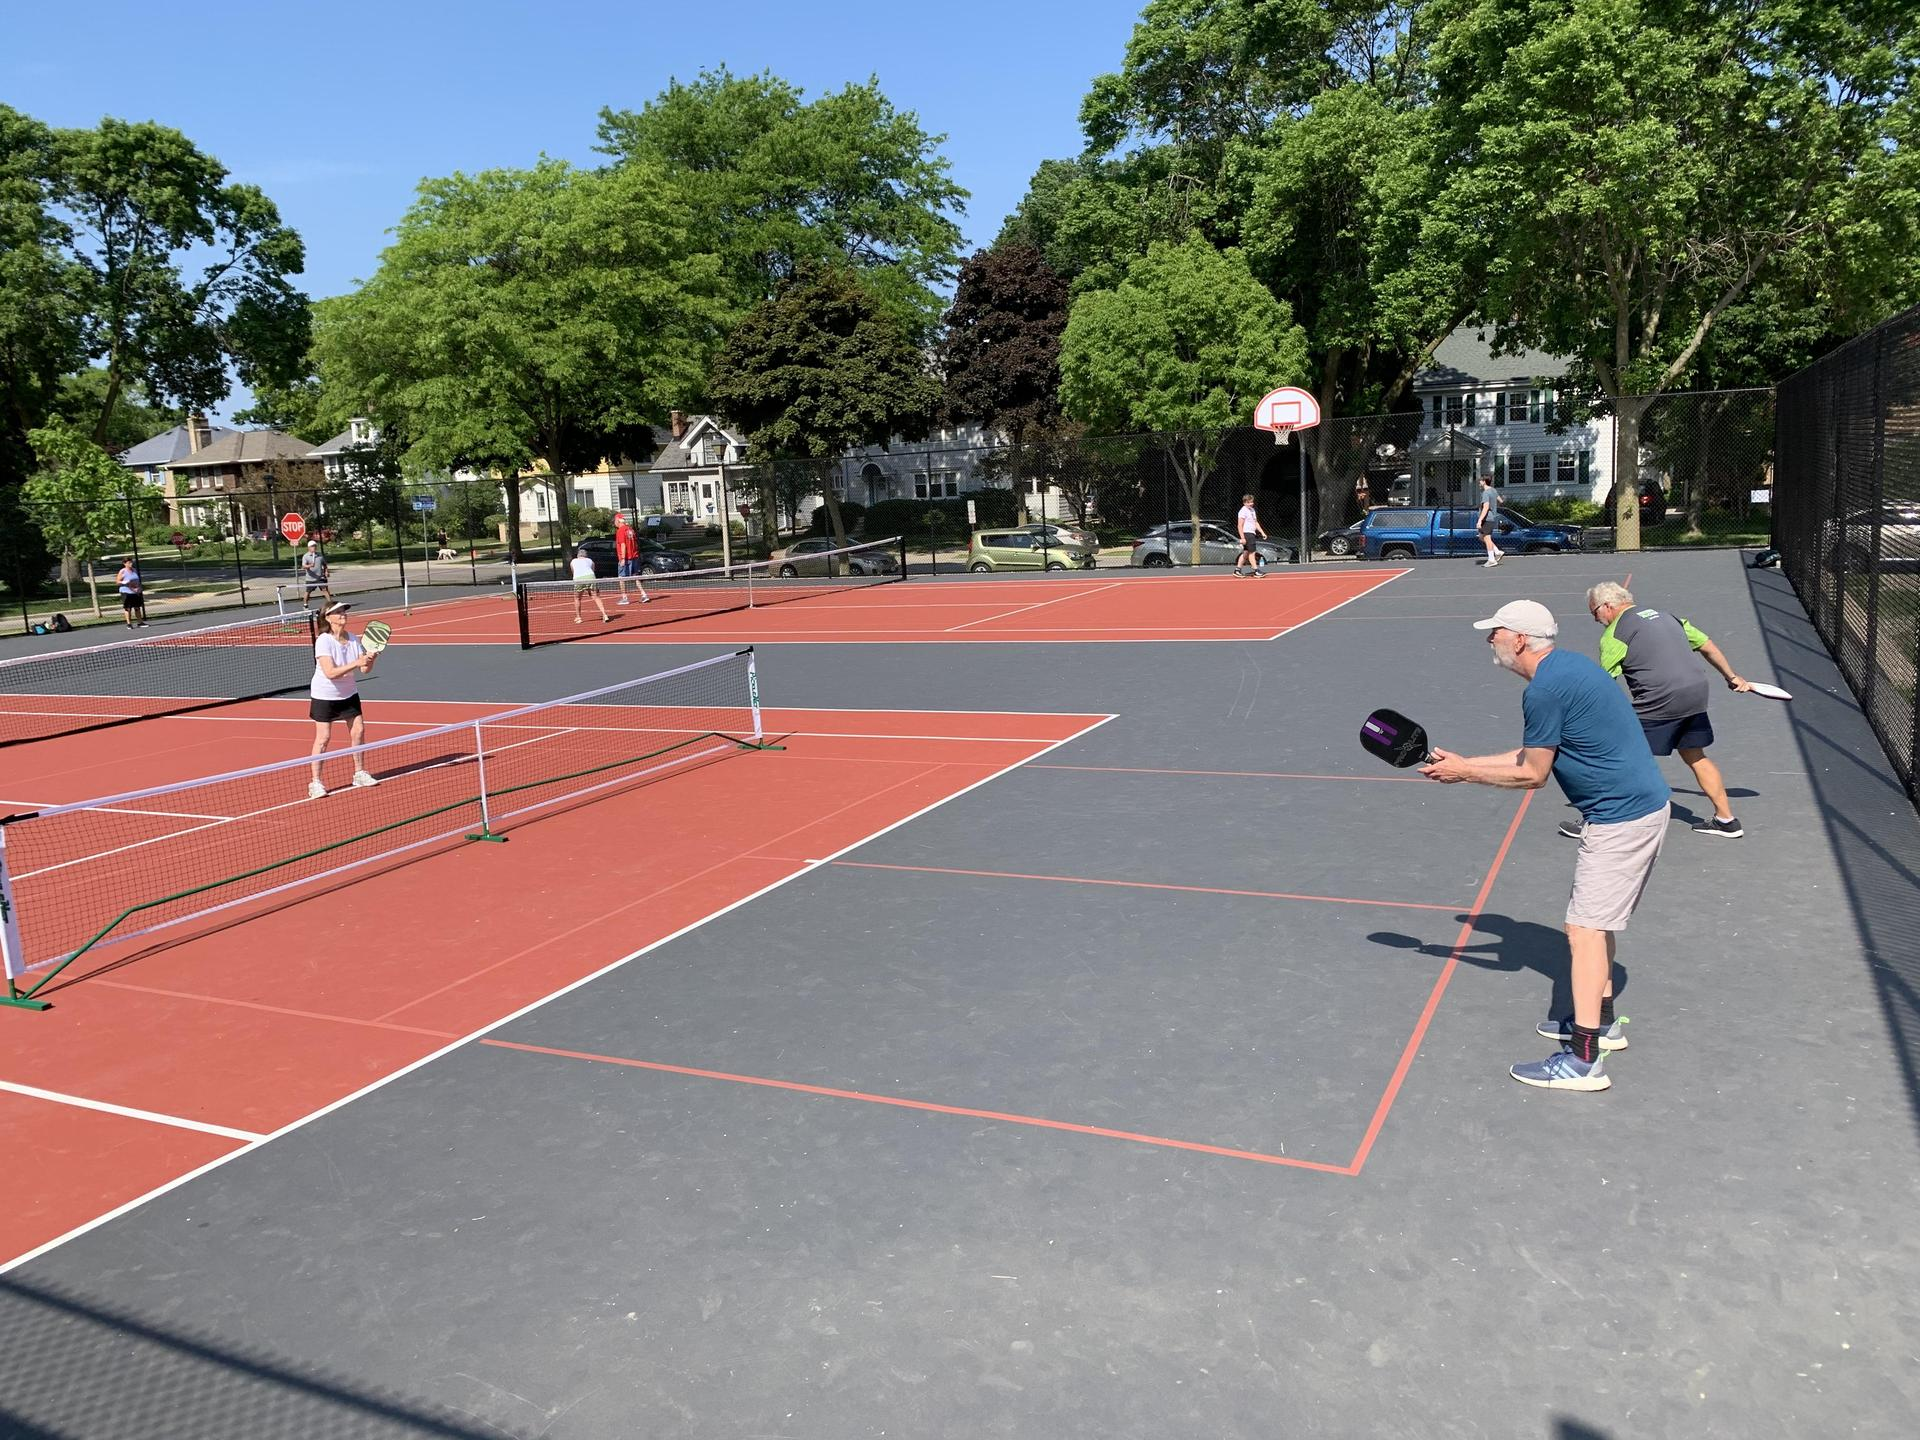 Outdoor Pickleball at Atwater Elementary